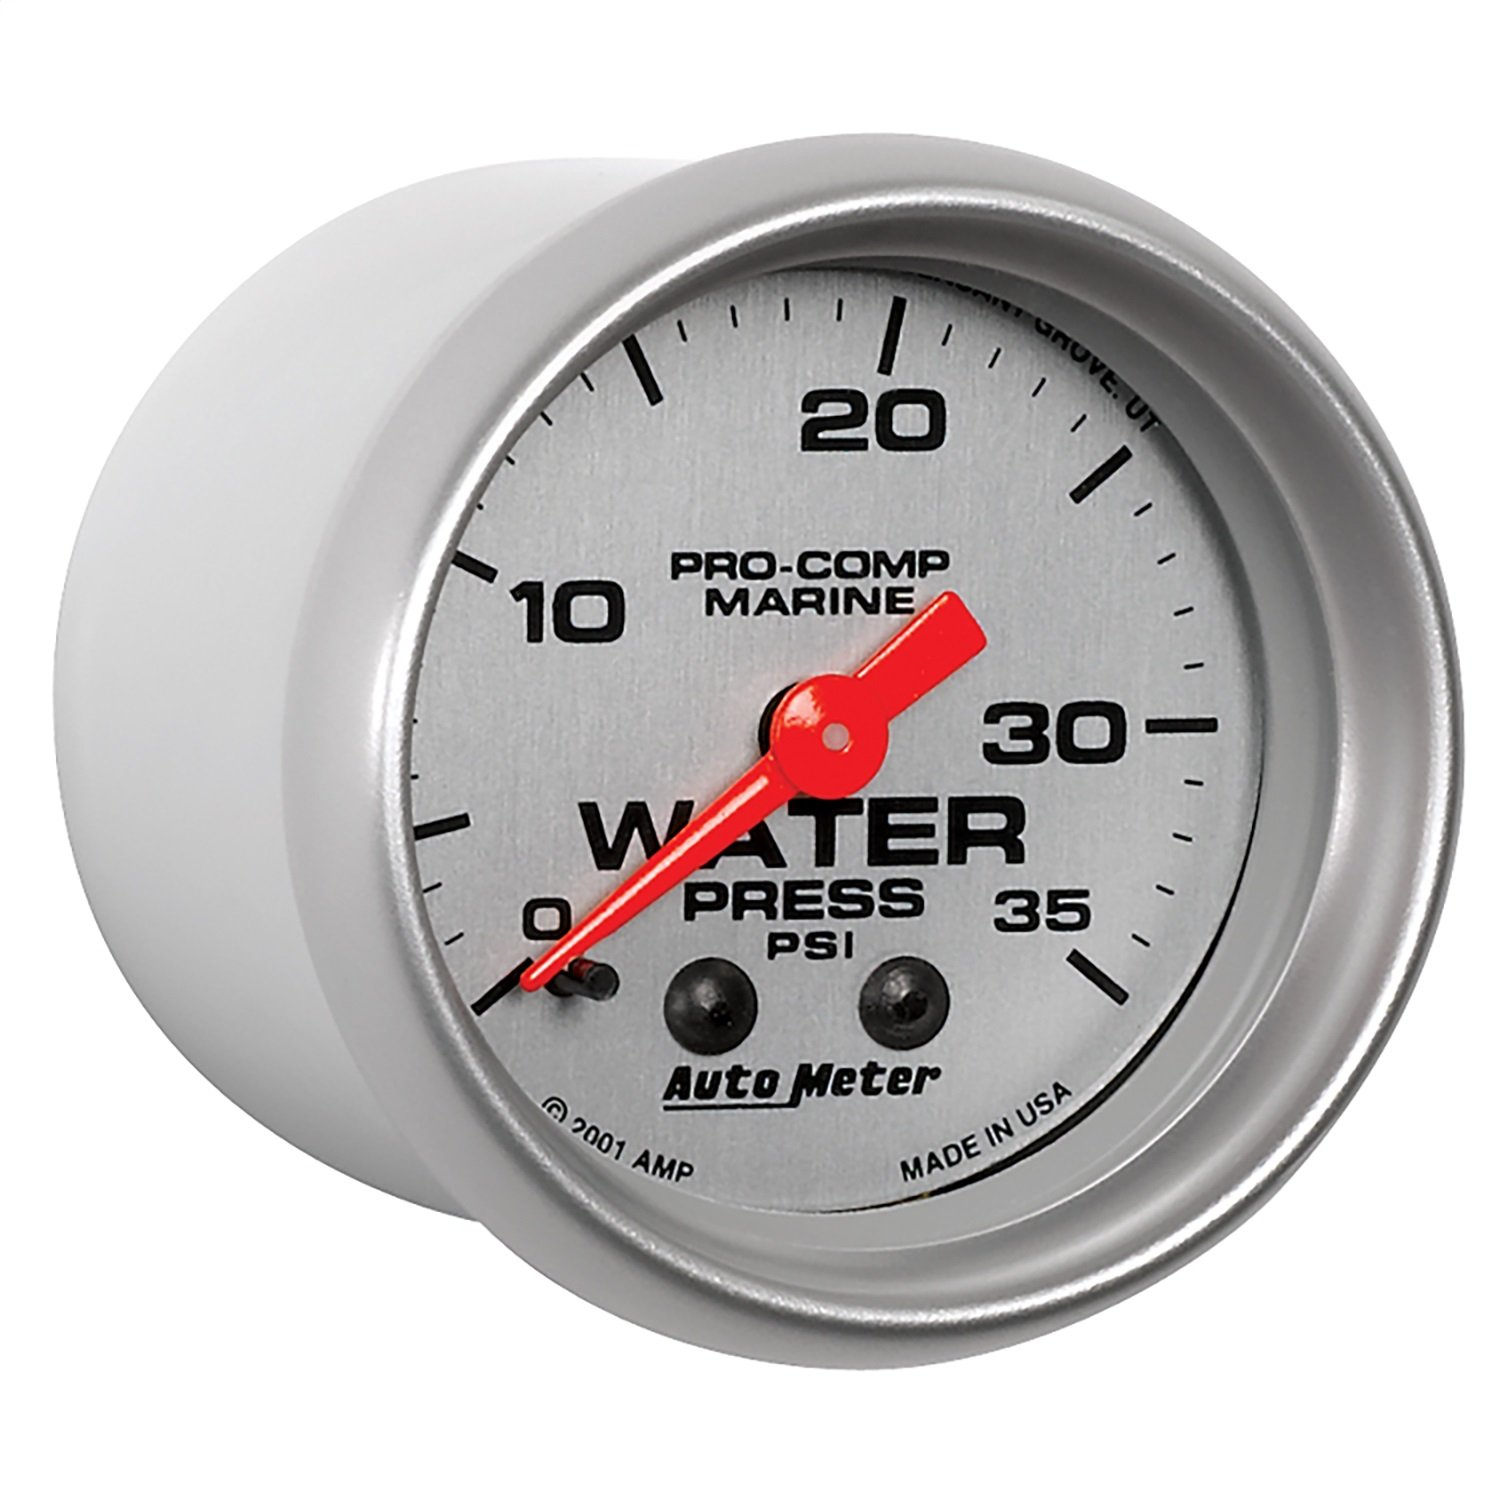 AutoMeter 200772-33 Marine Mechanical Water Pressure Gauge 2-1/16 in. Silver Dial Face Brushed Aluminum Bezel by Auto Meter